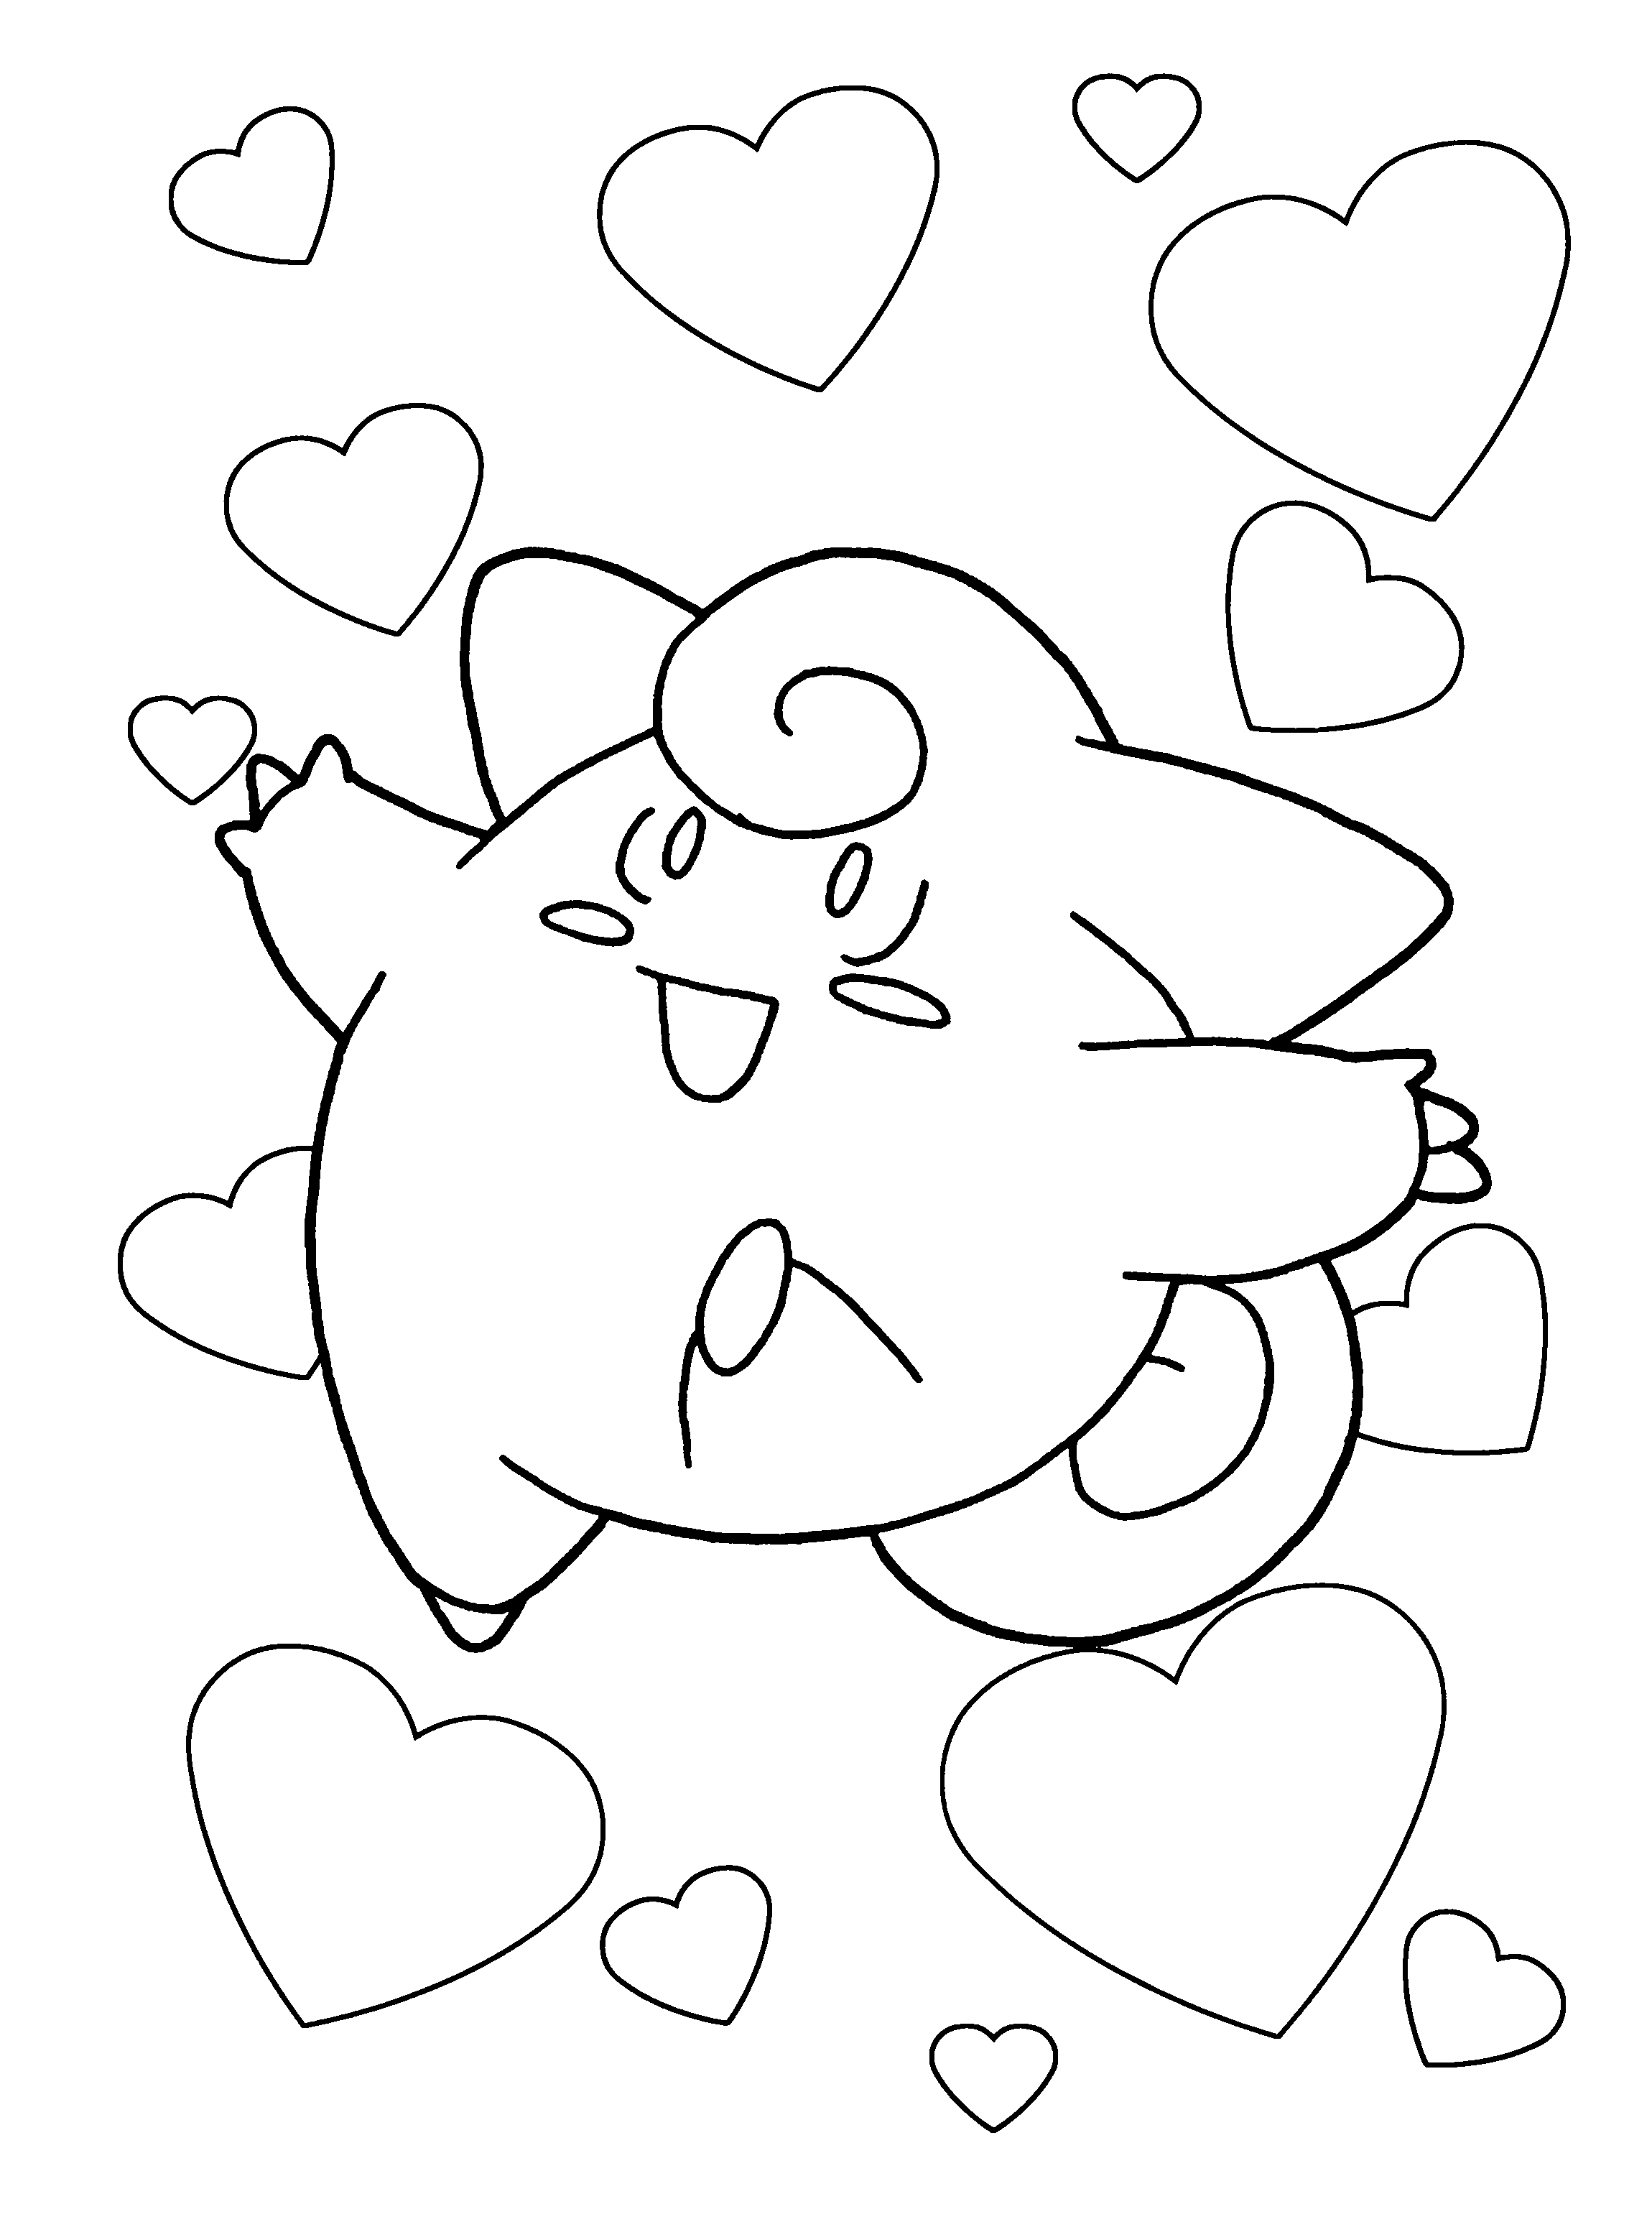 pokemom coloring pages - photo#35